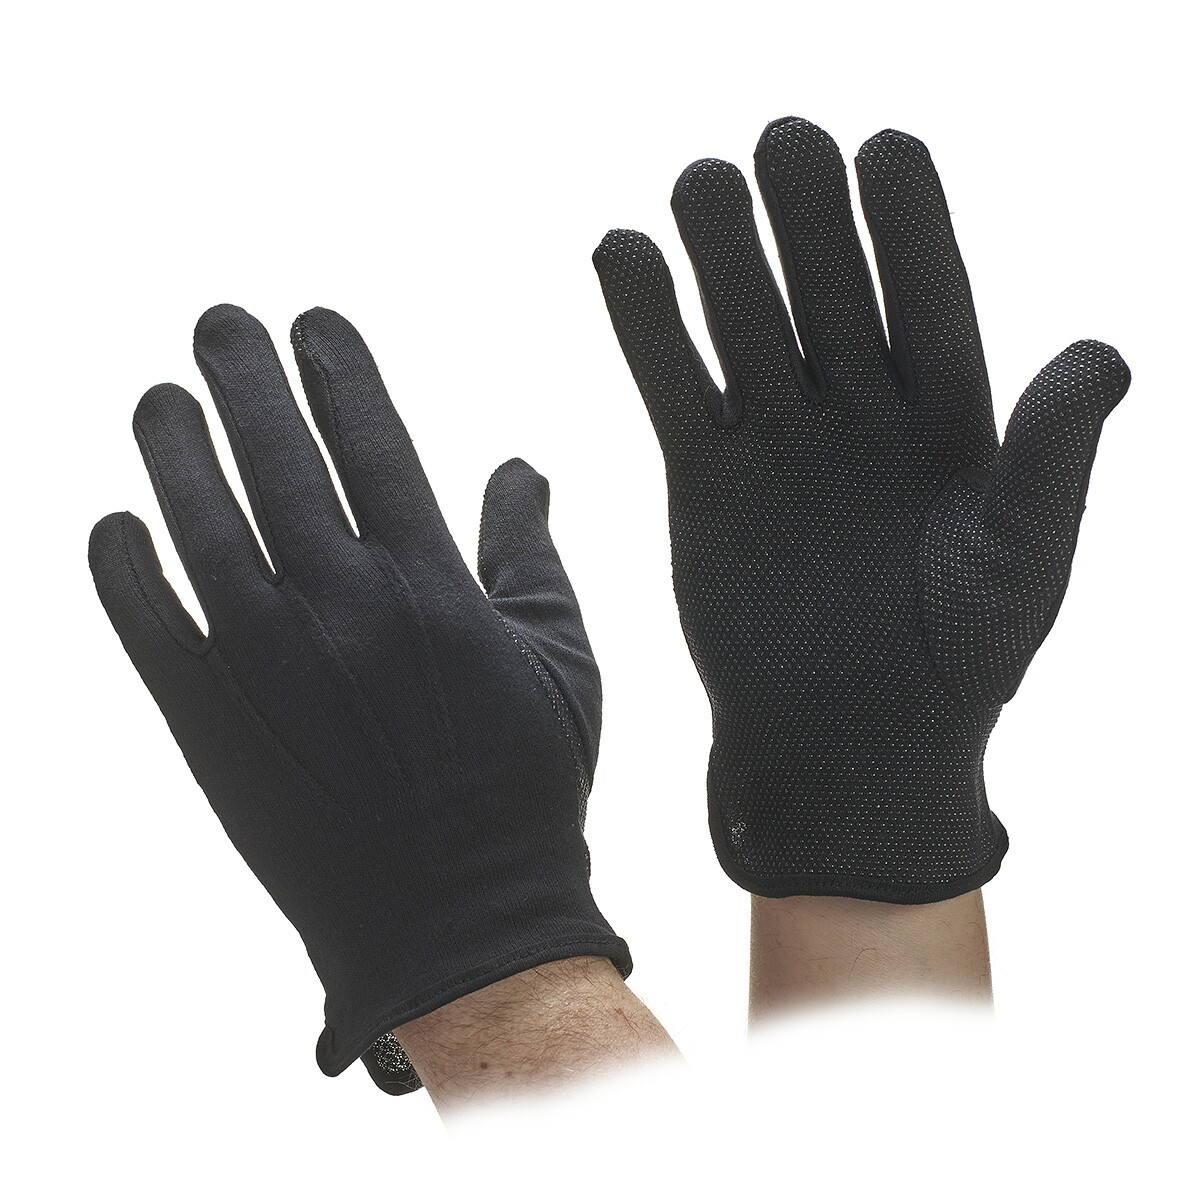 Food Service Gloves Are